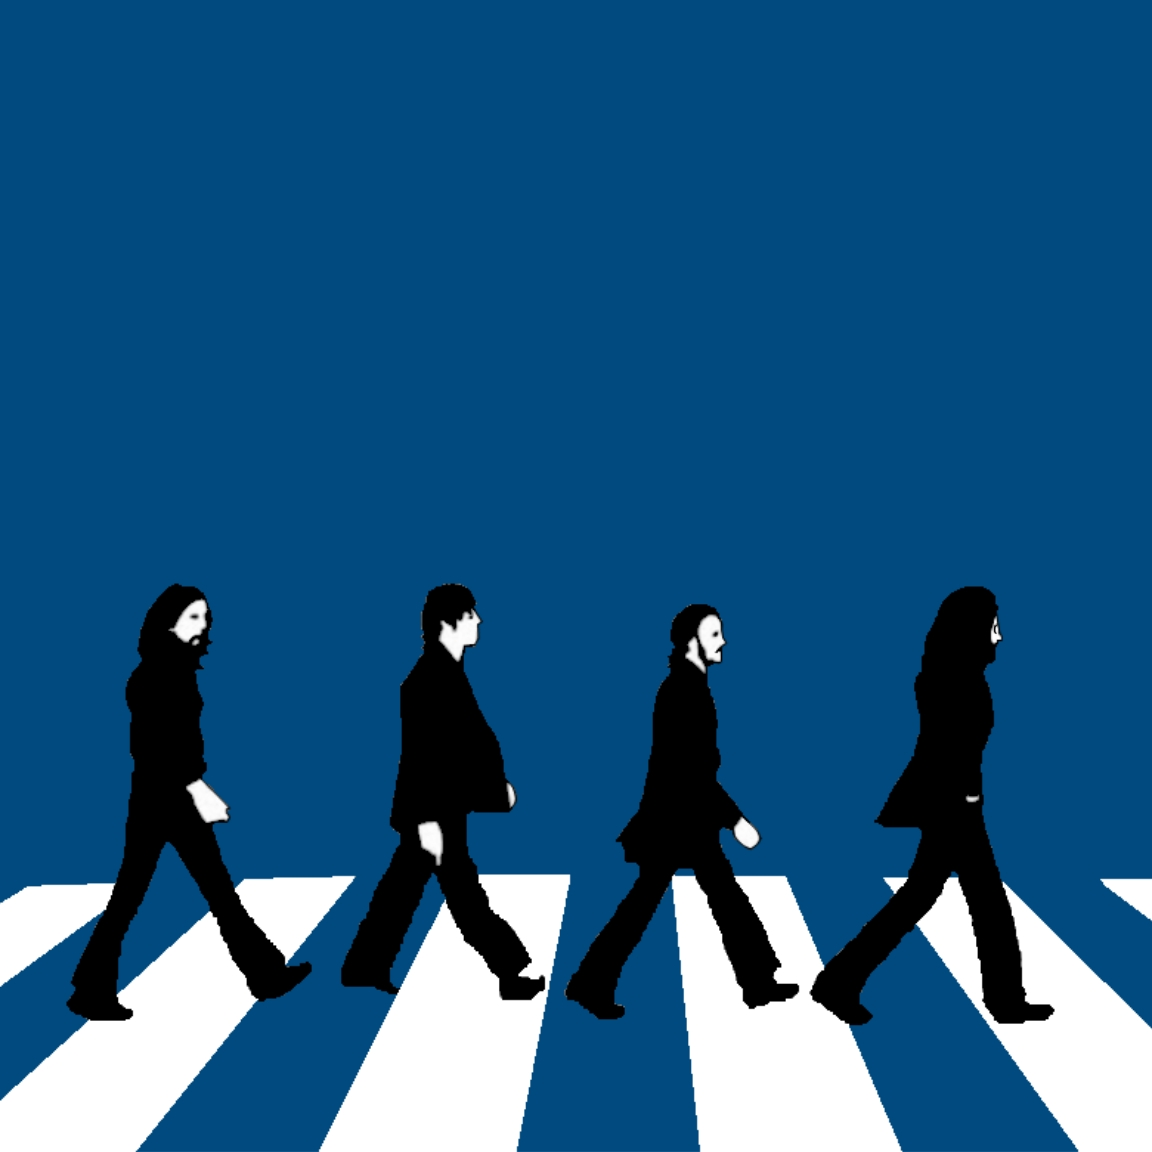 Abbey Road Wallpaper Hd Beatles Abbey Road Silhouette At Getdrawings Com Free